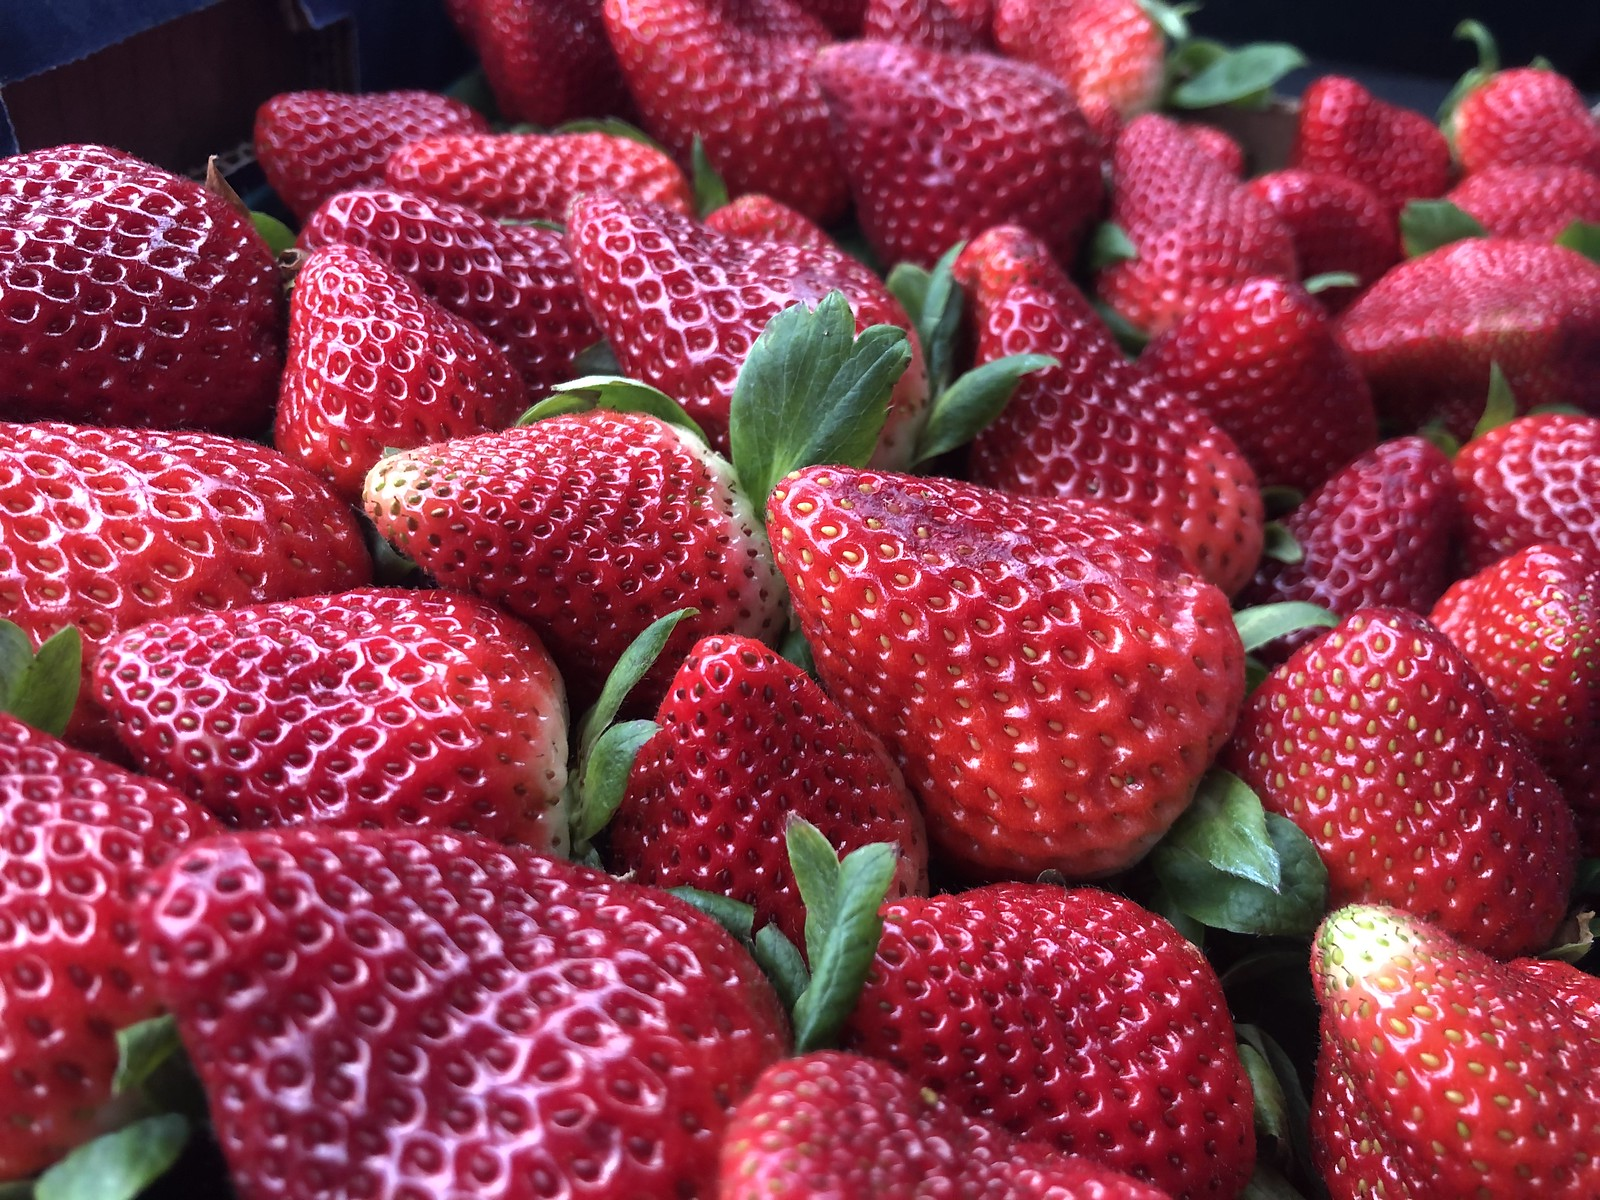 M&c strawberries